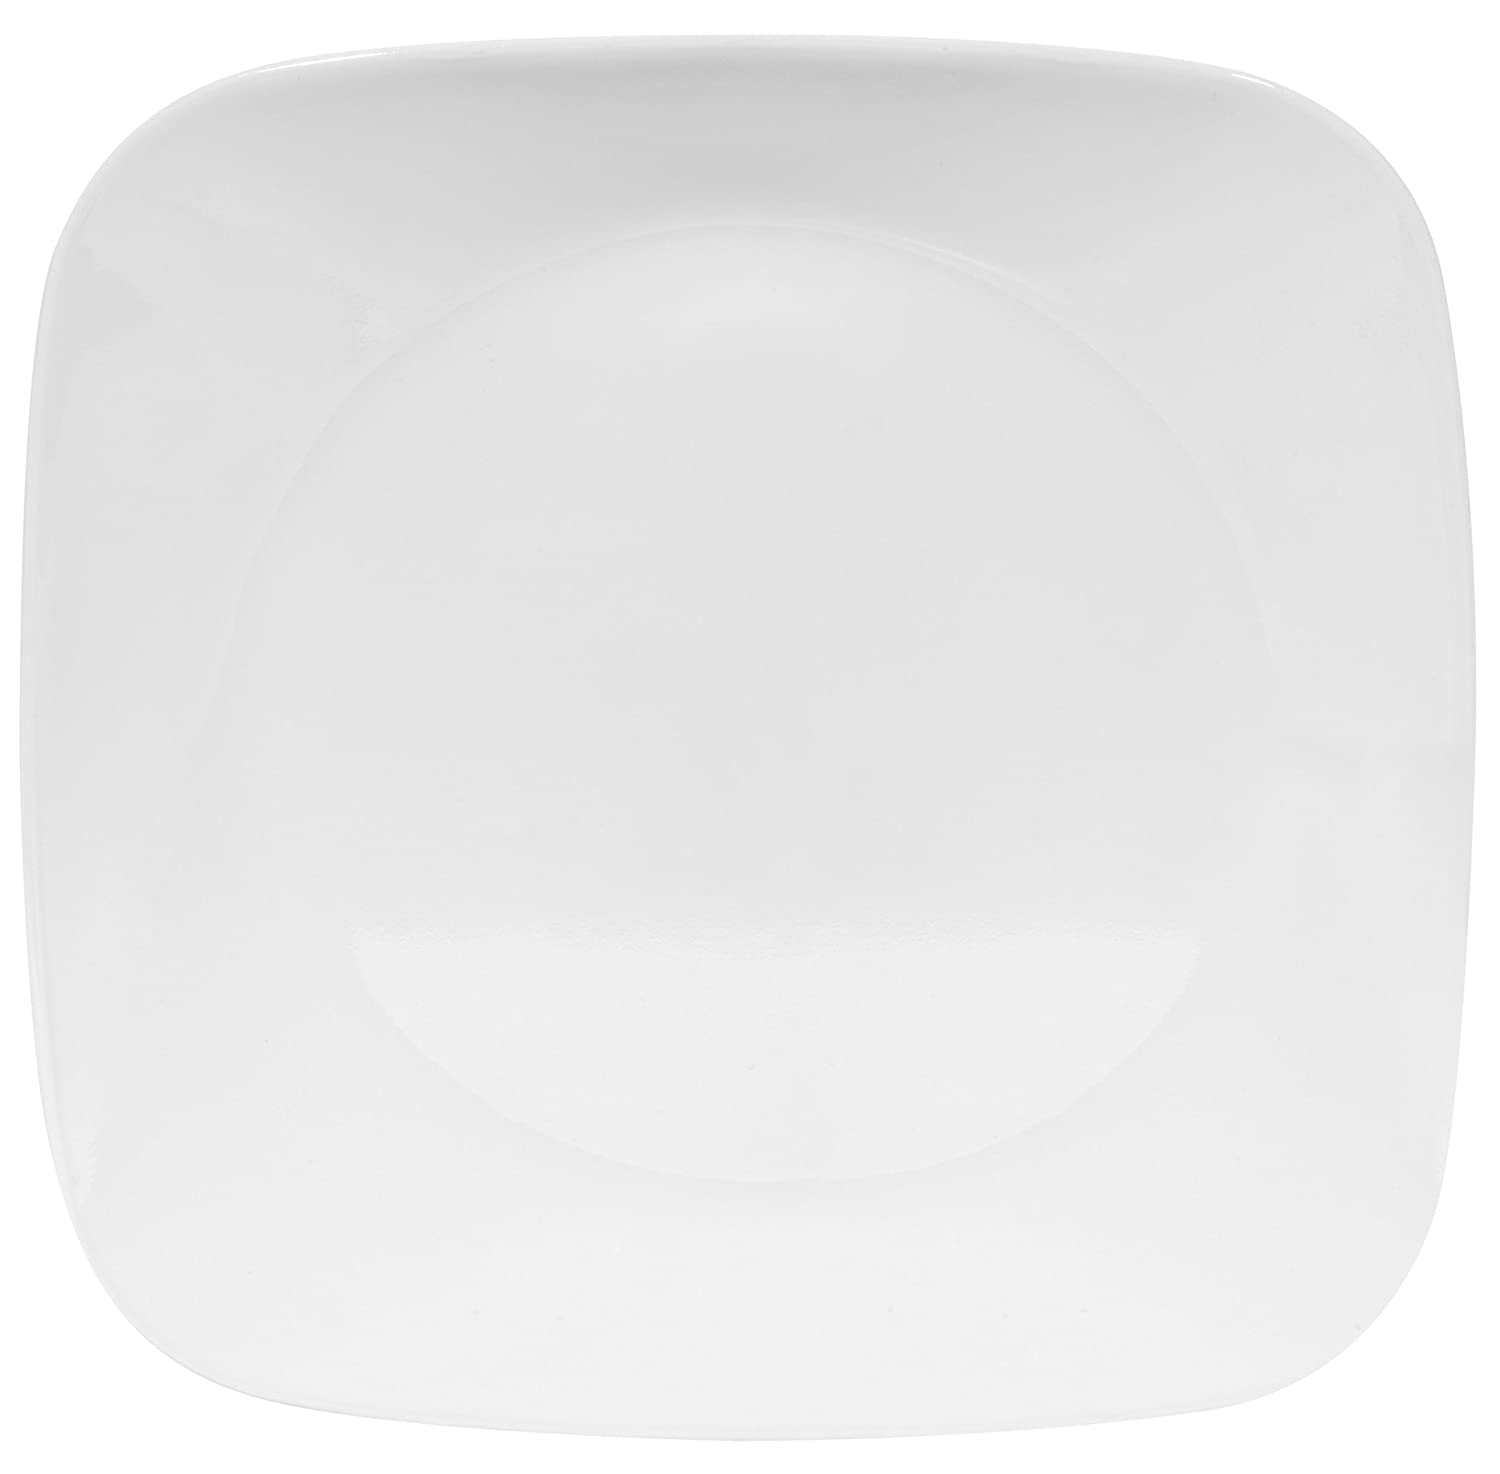 Corelle Square 8-3/4-Inch Luncheon Plate, Pure White 1069960